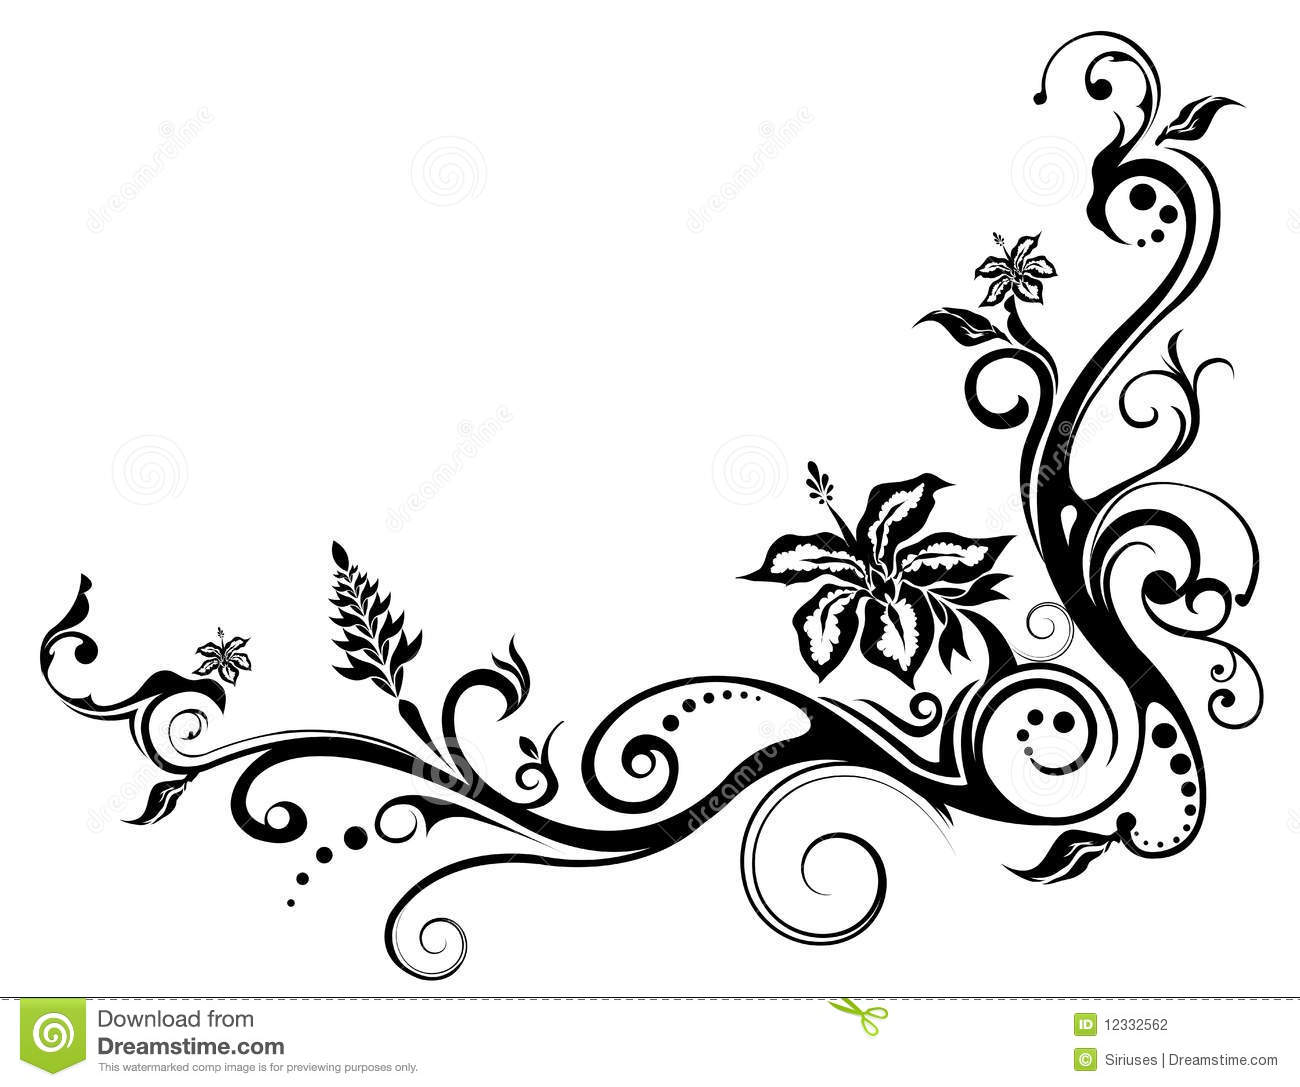 Displaying 19gt Images For Vines And Flowers Design